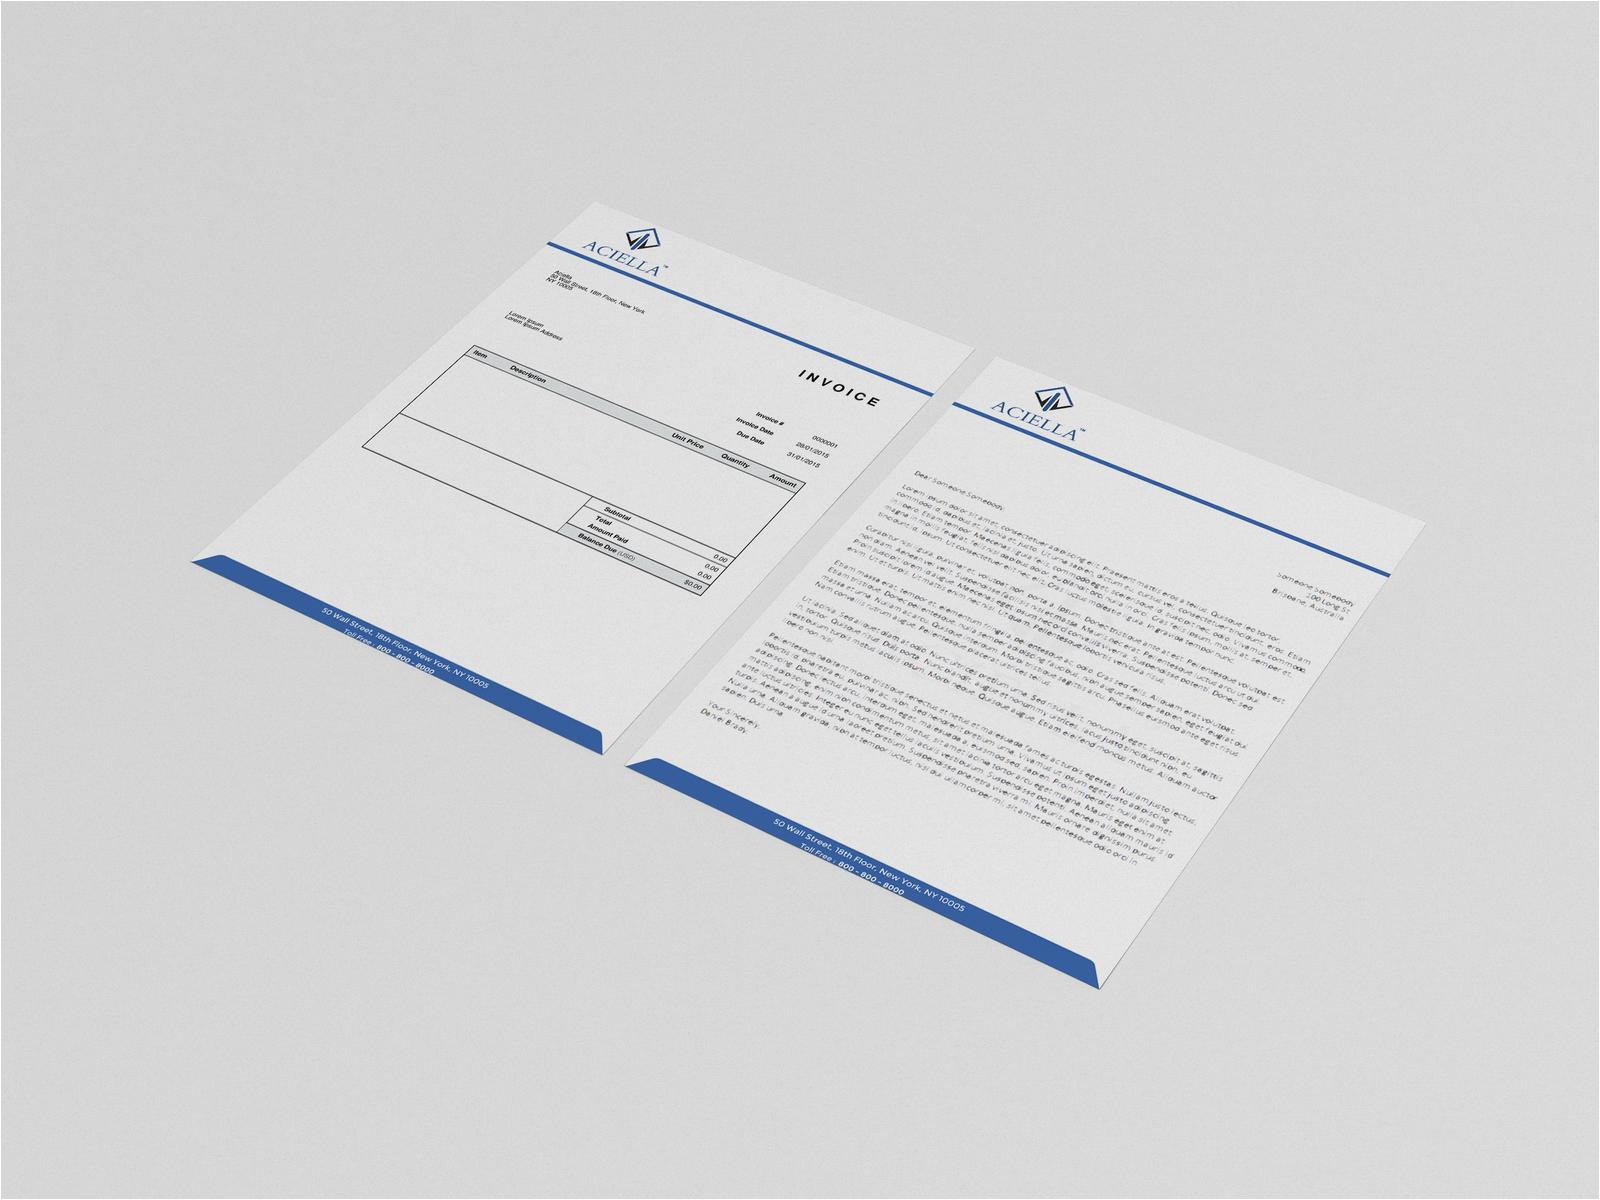 design some business cards for finance consulting pany of business card letterhead envelope template of business card letterhead envelope template jpg